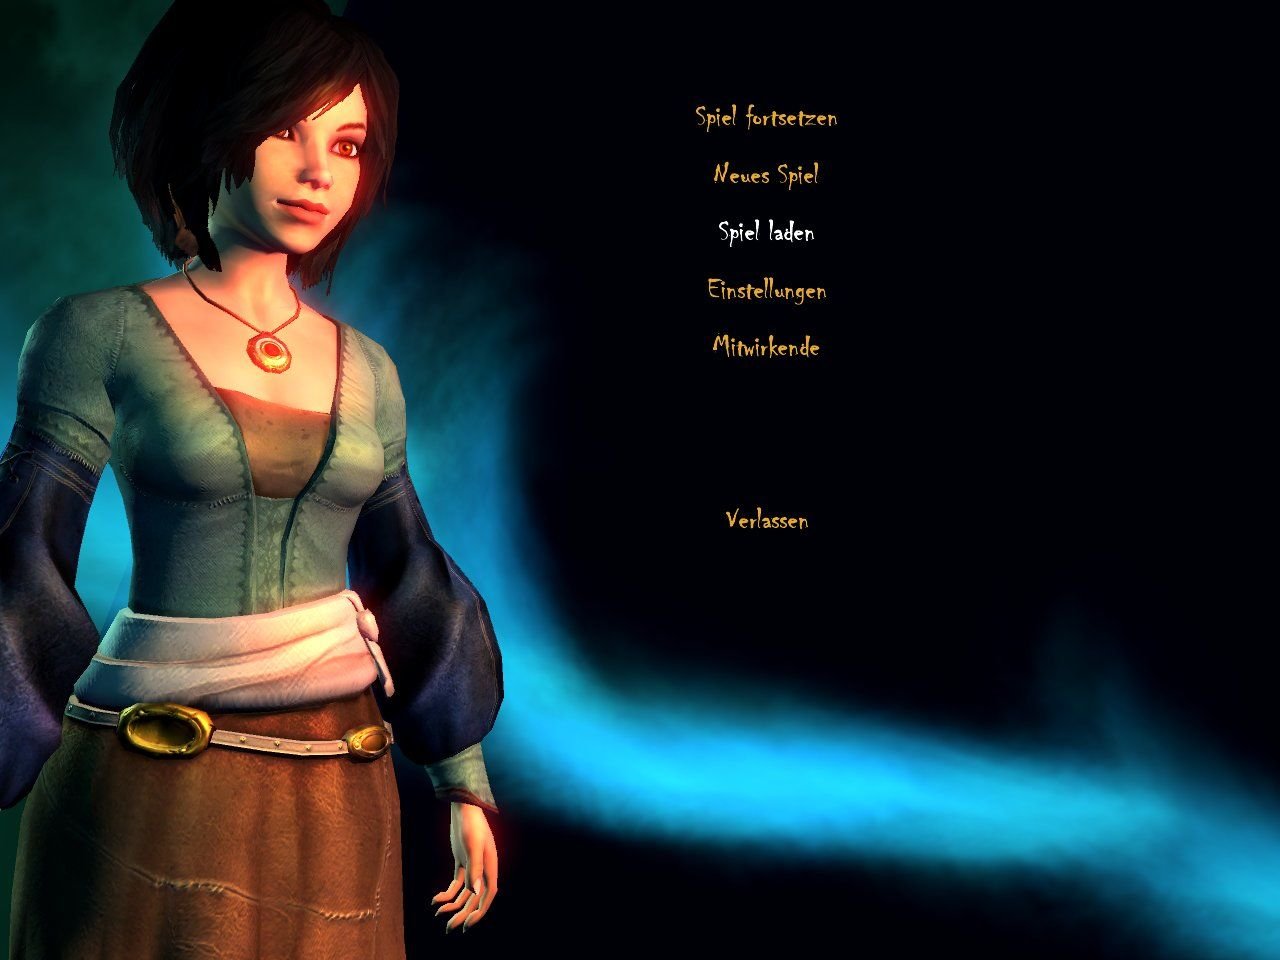 Haunted Windows Main menu at the start of the game, with protagonist Mary only.